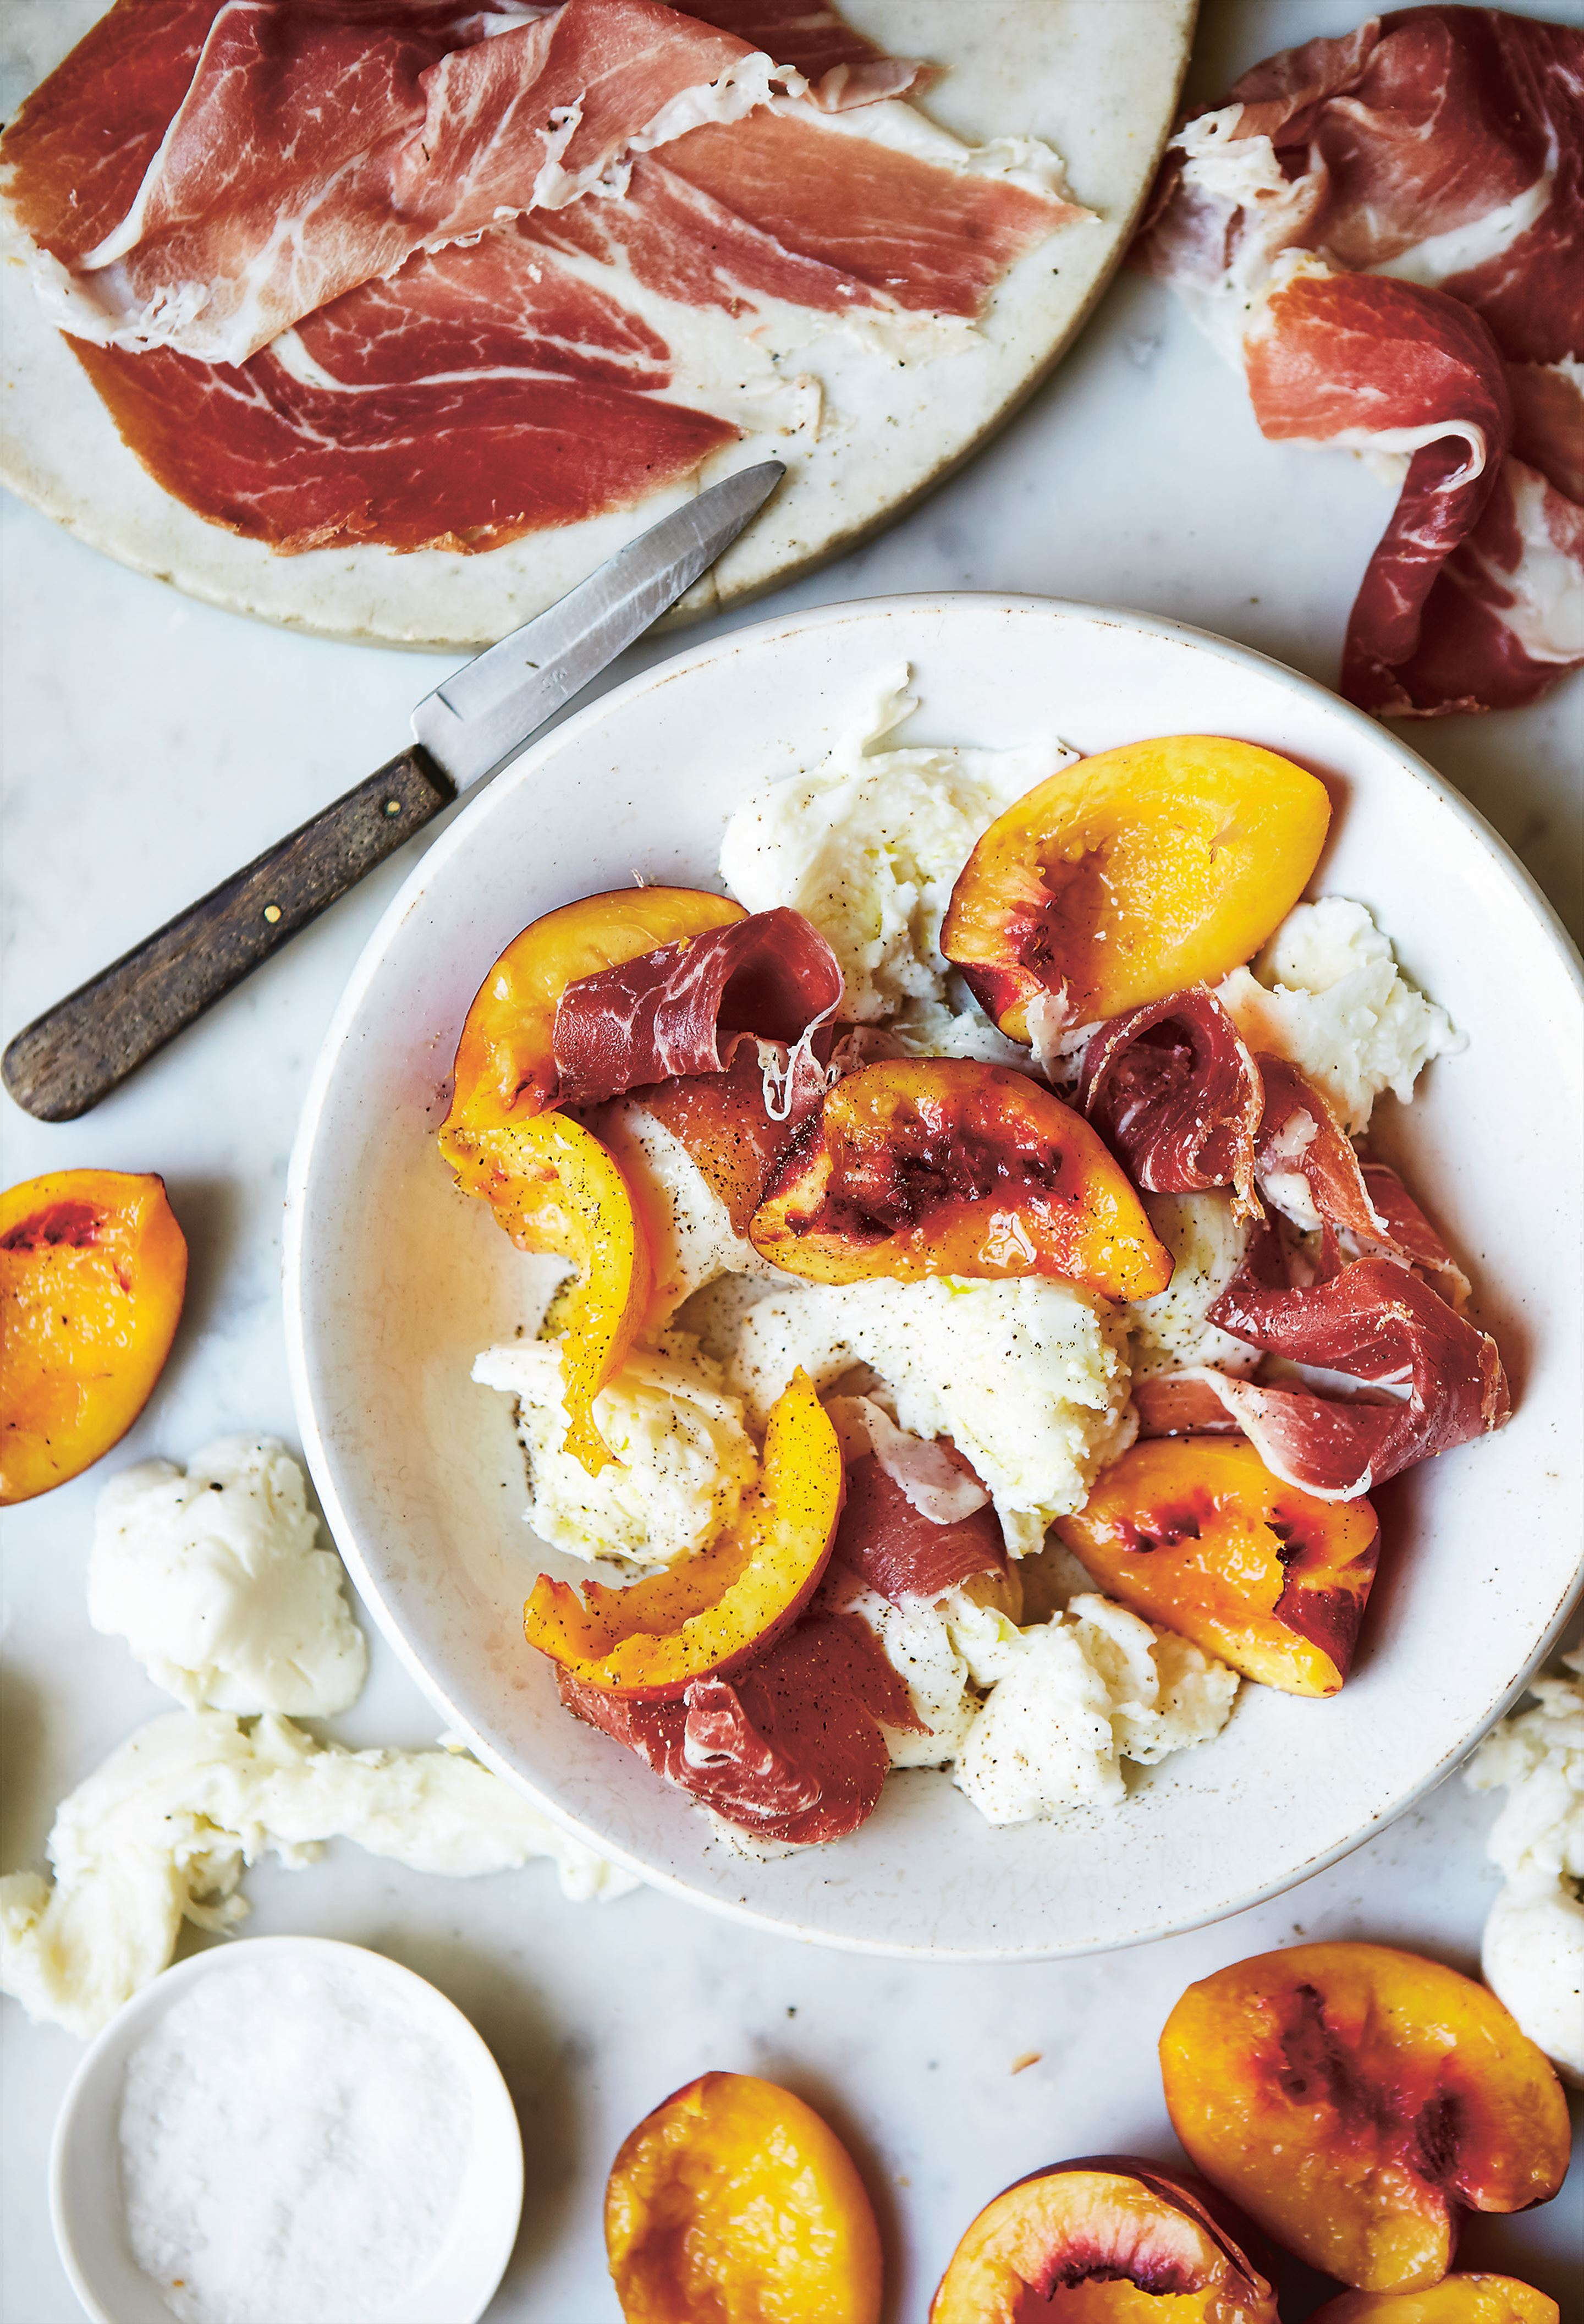 Mozzarella, peaches and prosciutto